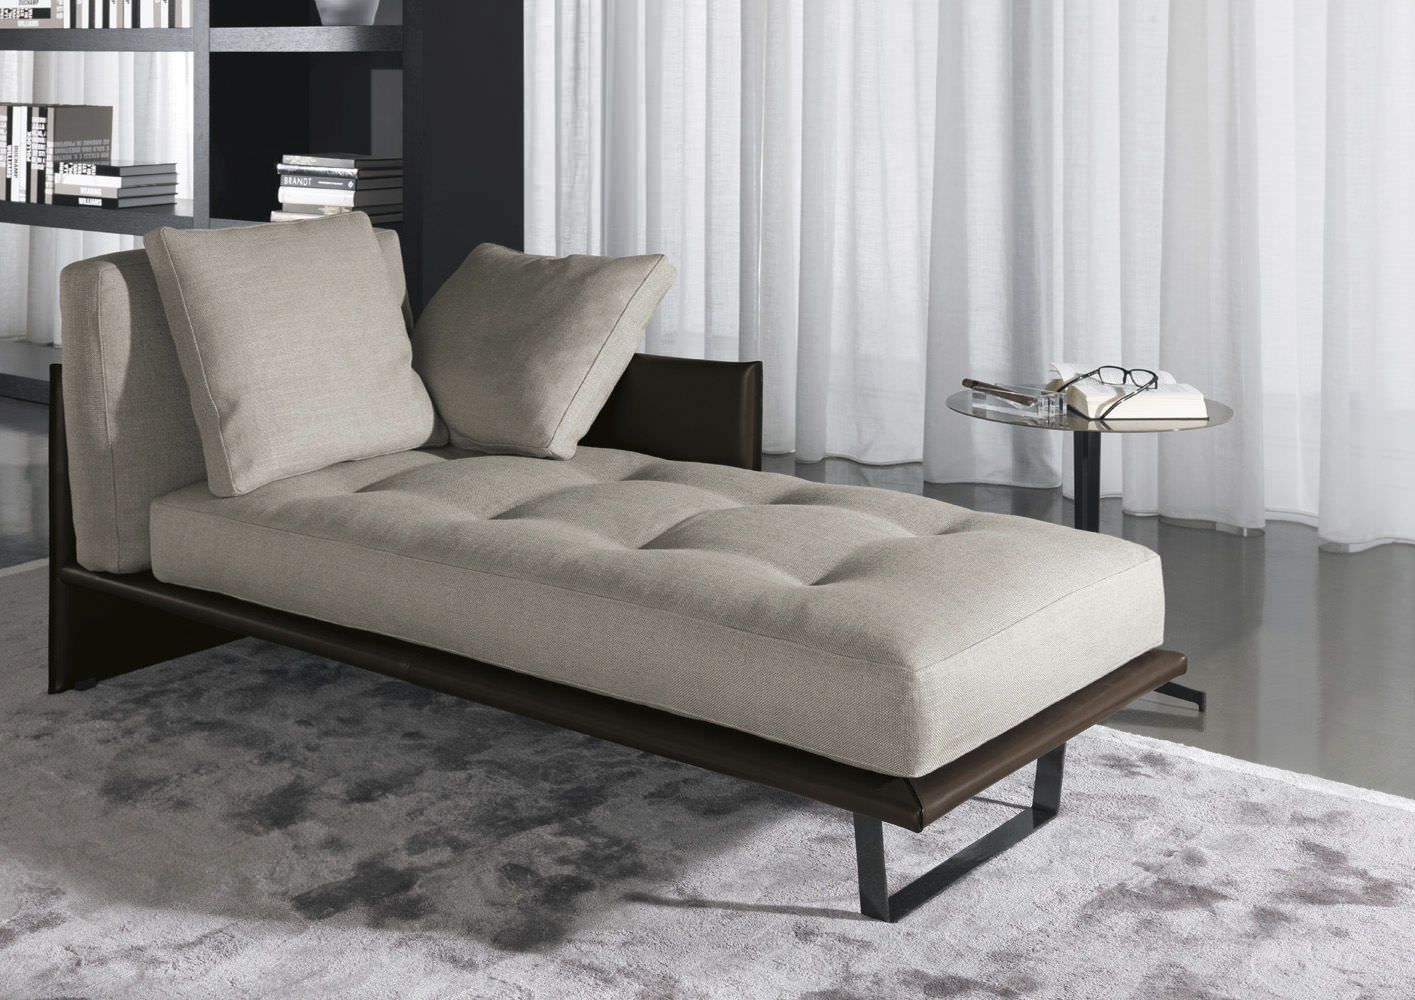 Contemporary daybed fabric indoor by Rodolfo Dordoni